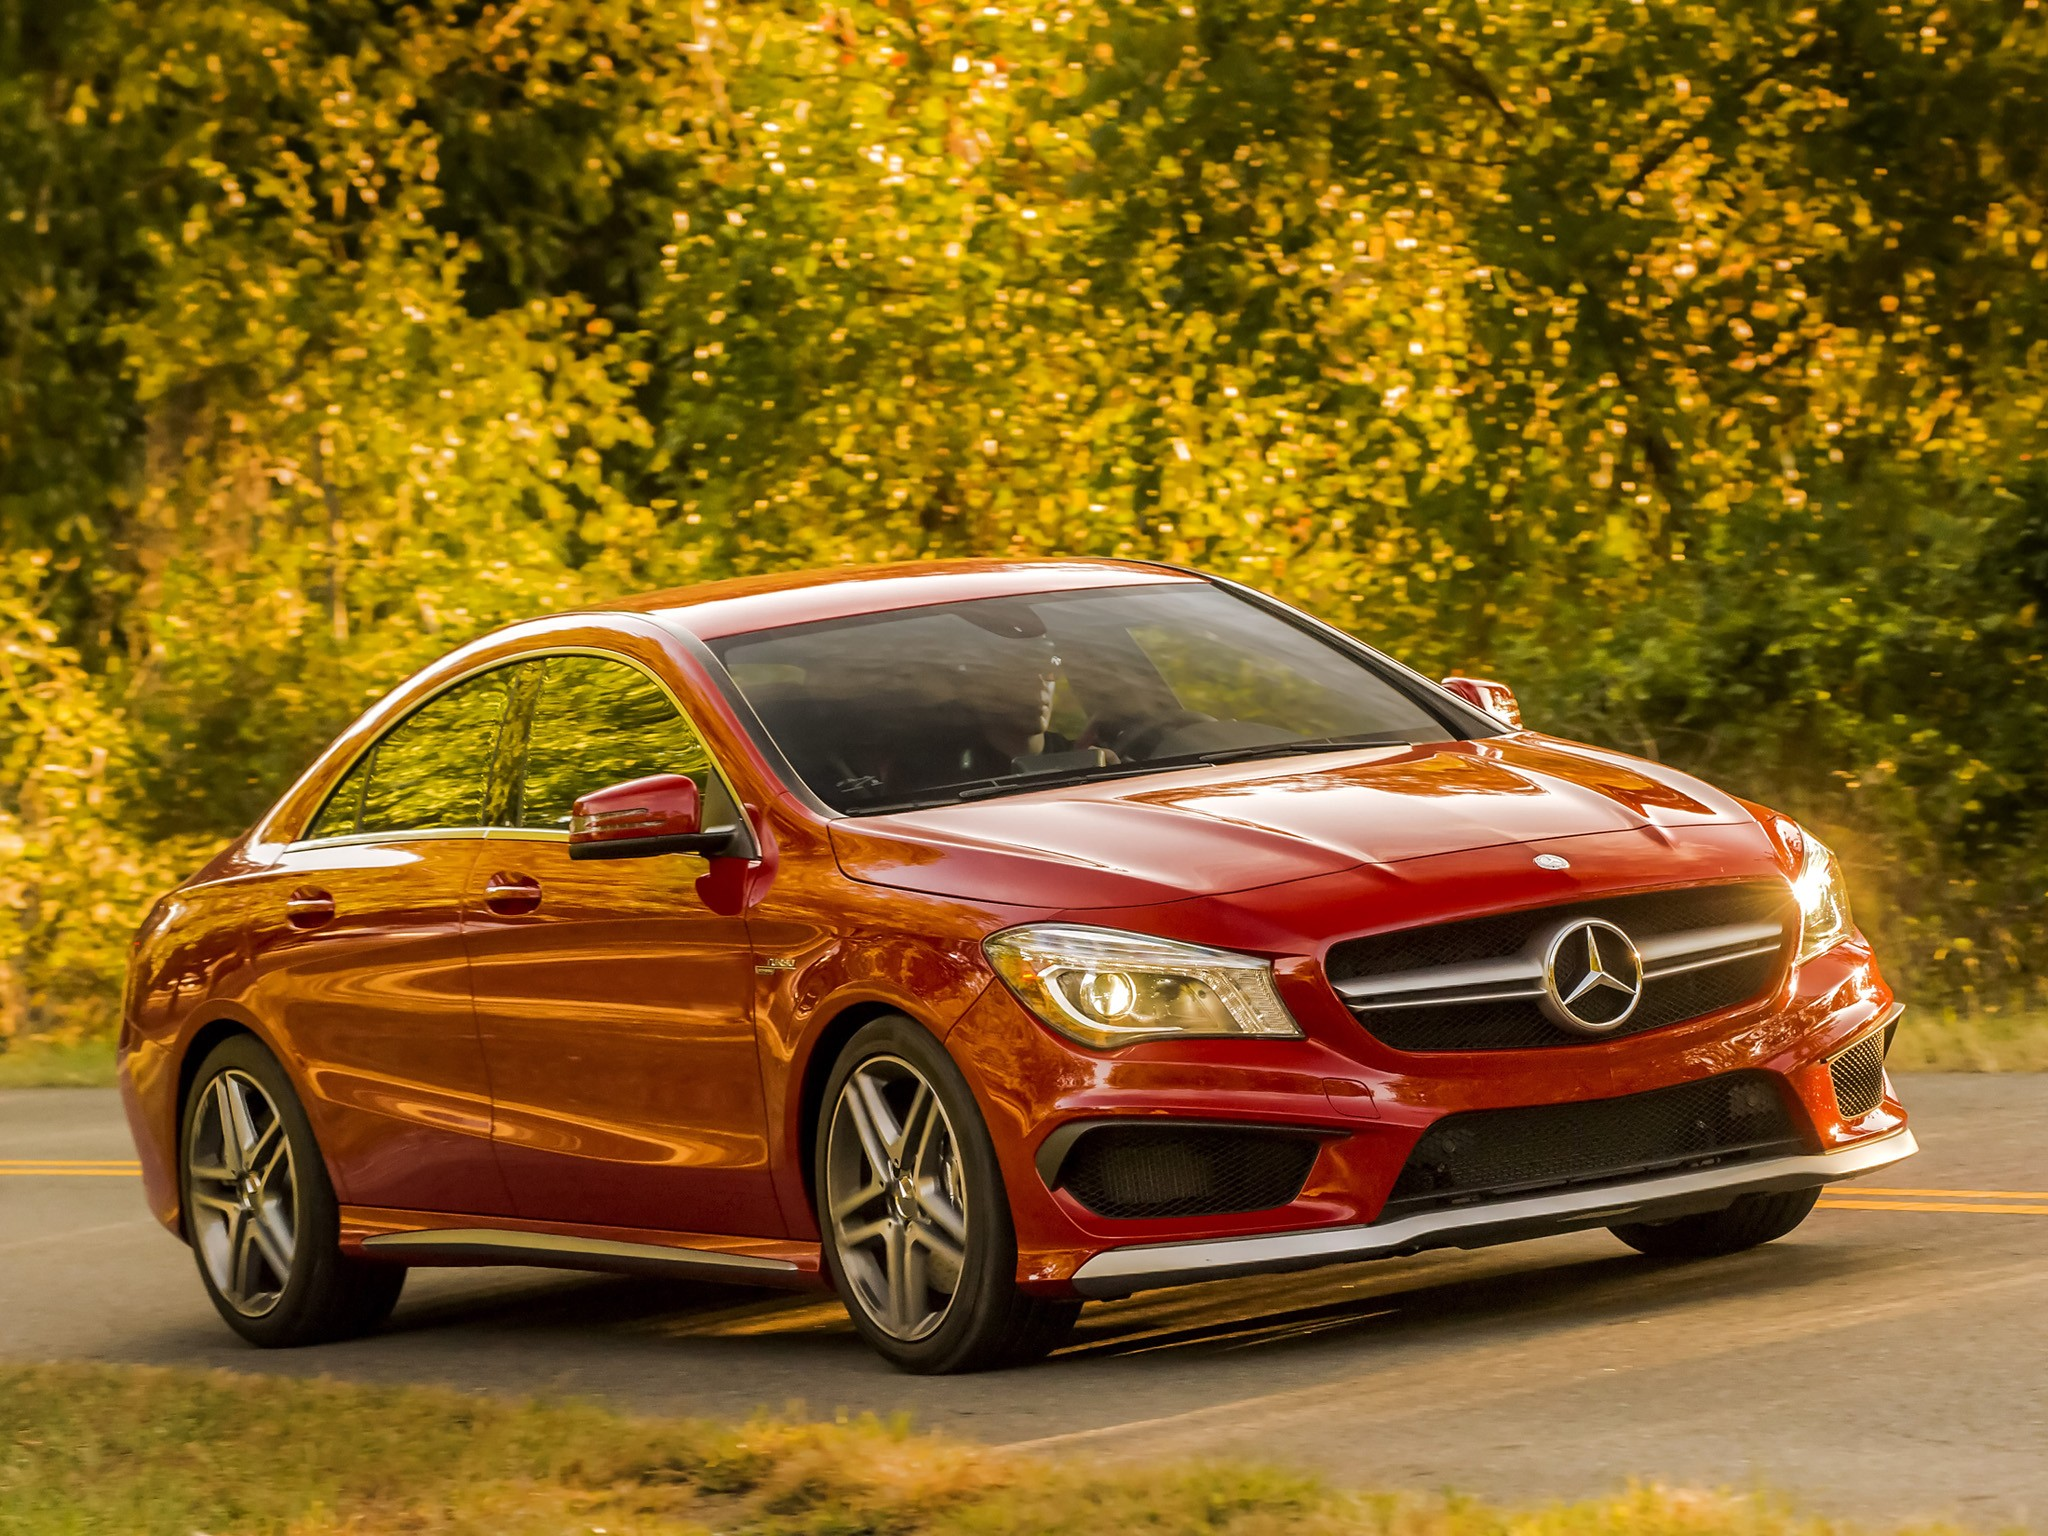 mercedes benz cla 45 c117 specs 2013 2014 2015 2016 autoevolution. Black Bedroom Furniture Sets. Home Design Ideas